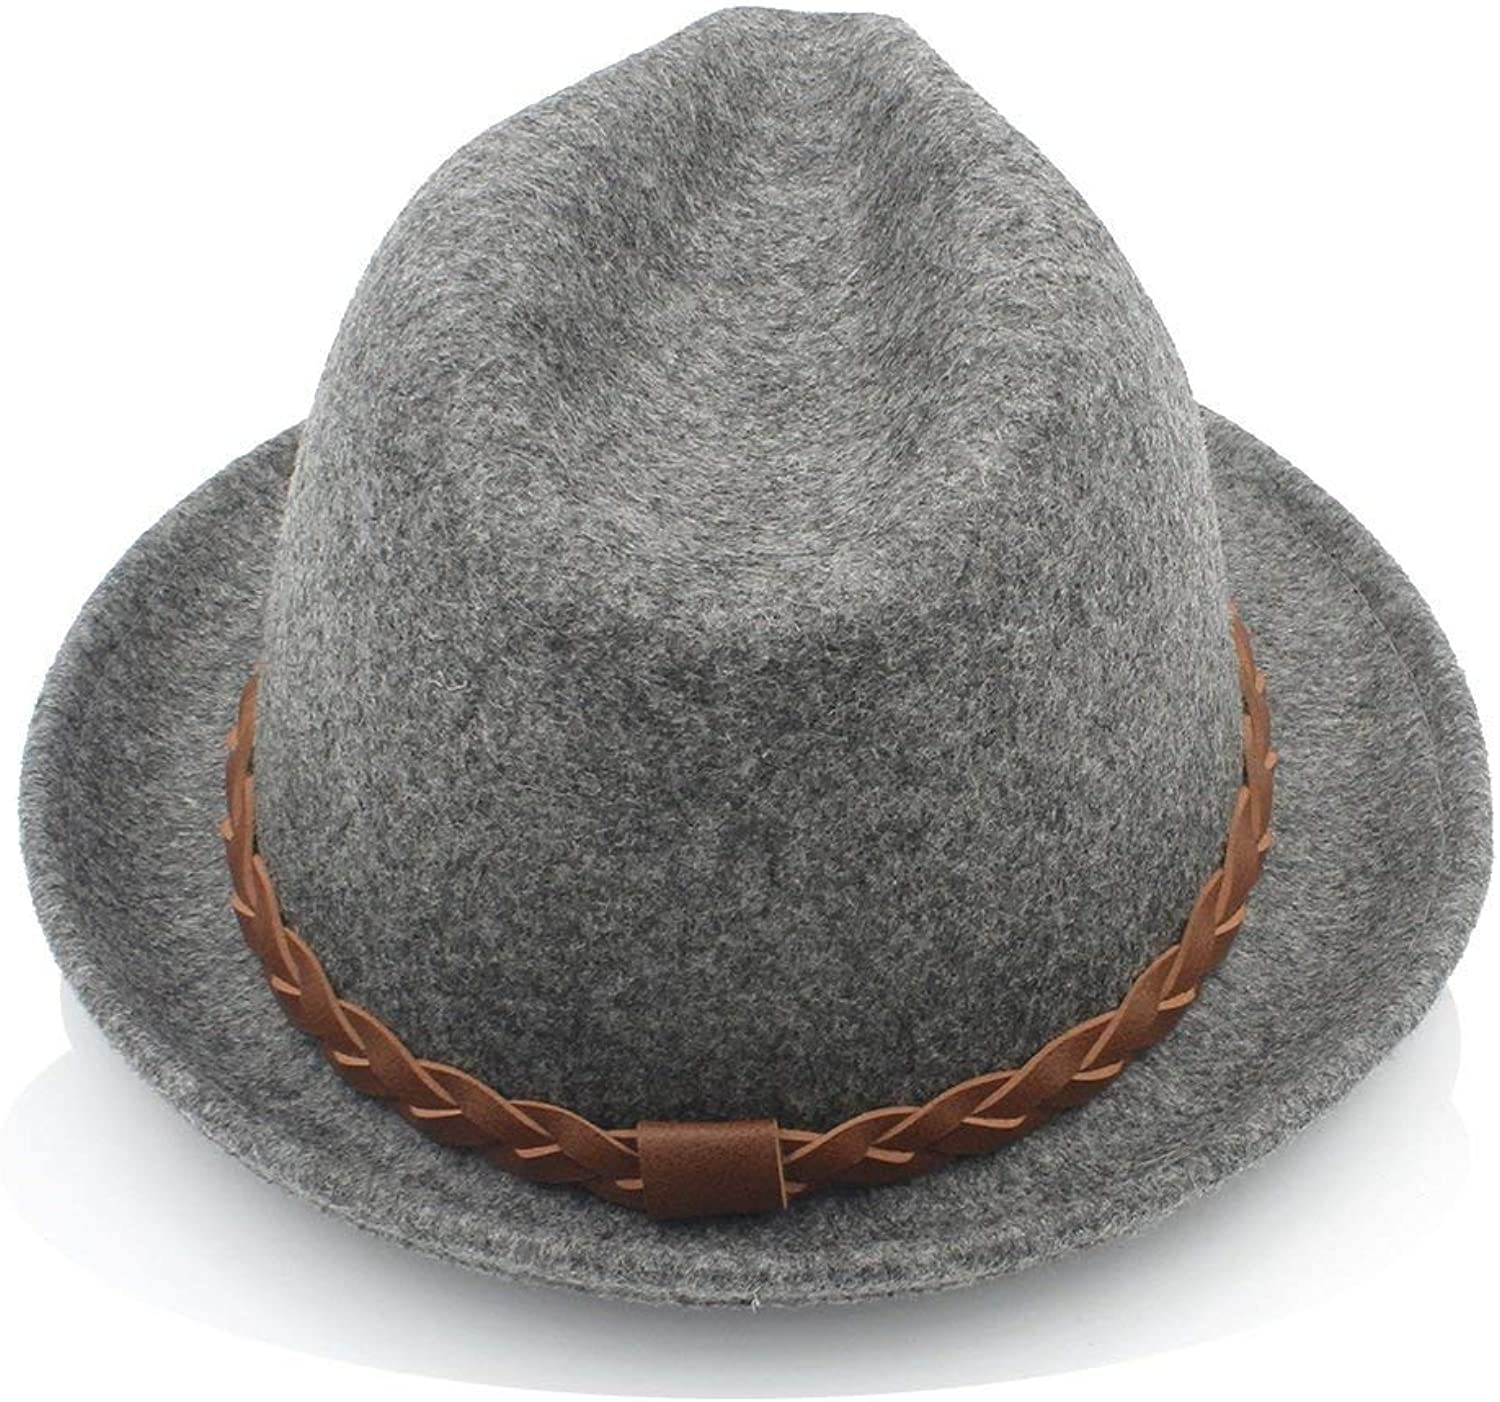 Women Men Chapeau Femme Fedora Hat Gentleman Sombrero Trilby Church Derby Cloche Top Cap with Fashion Leather Warm Soft and Comfortable Hats